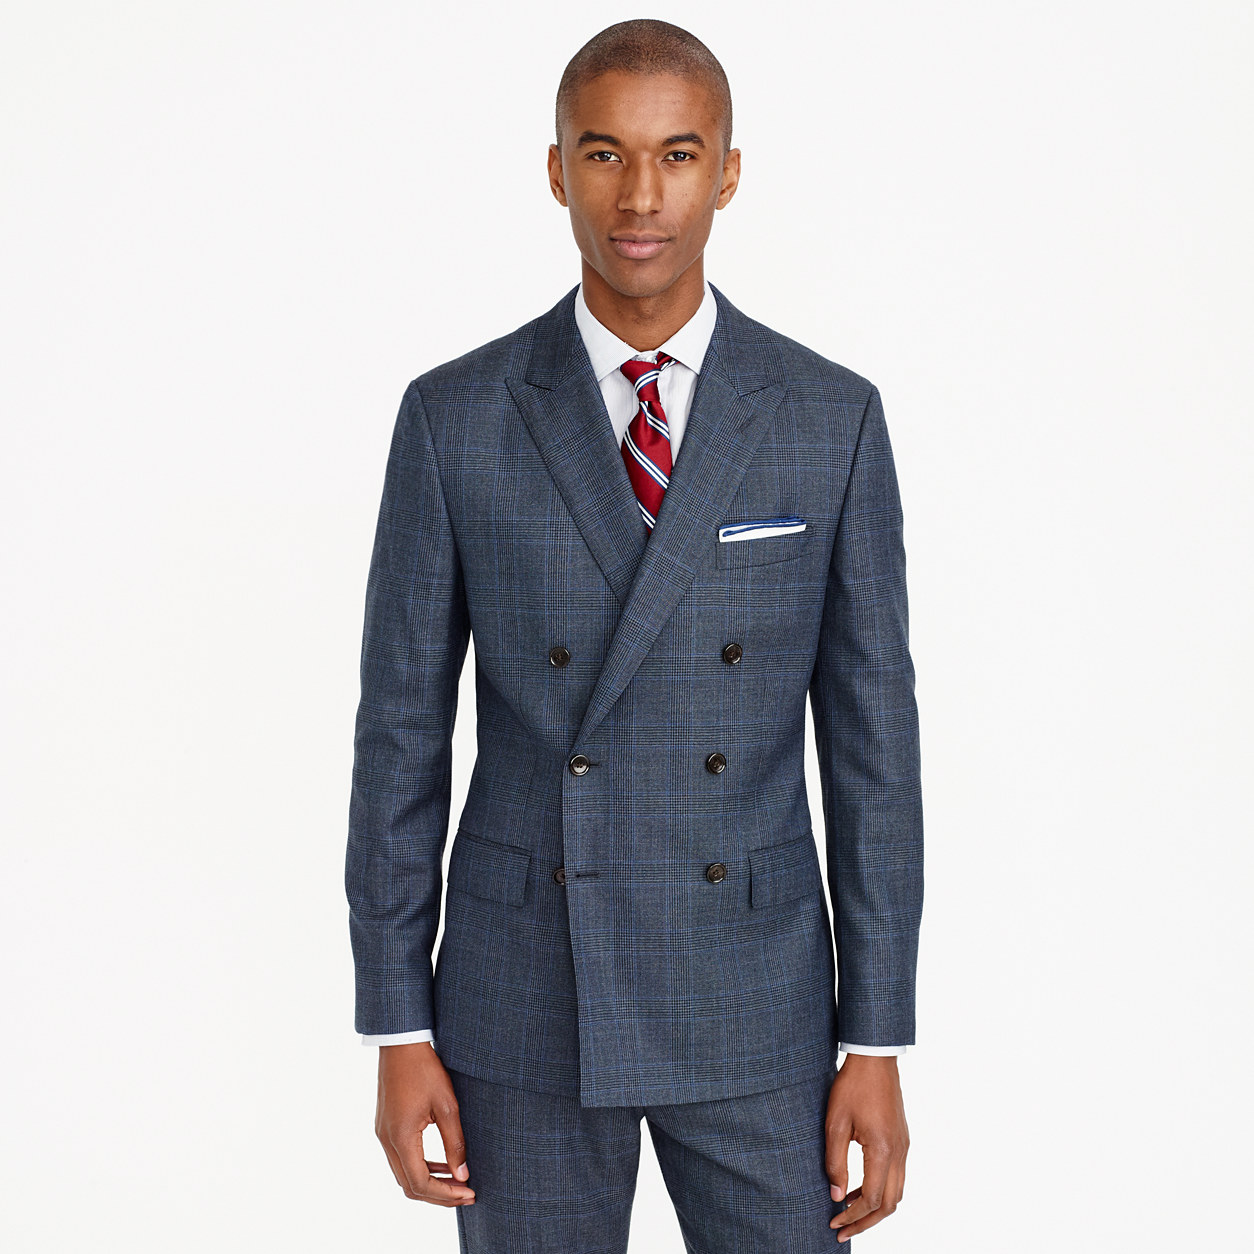 Image result for double breasted suit jacket